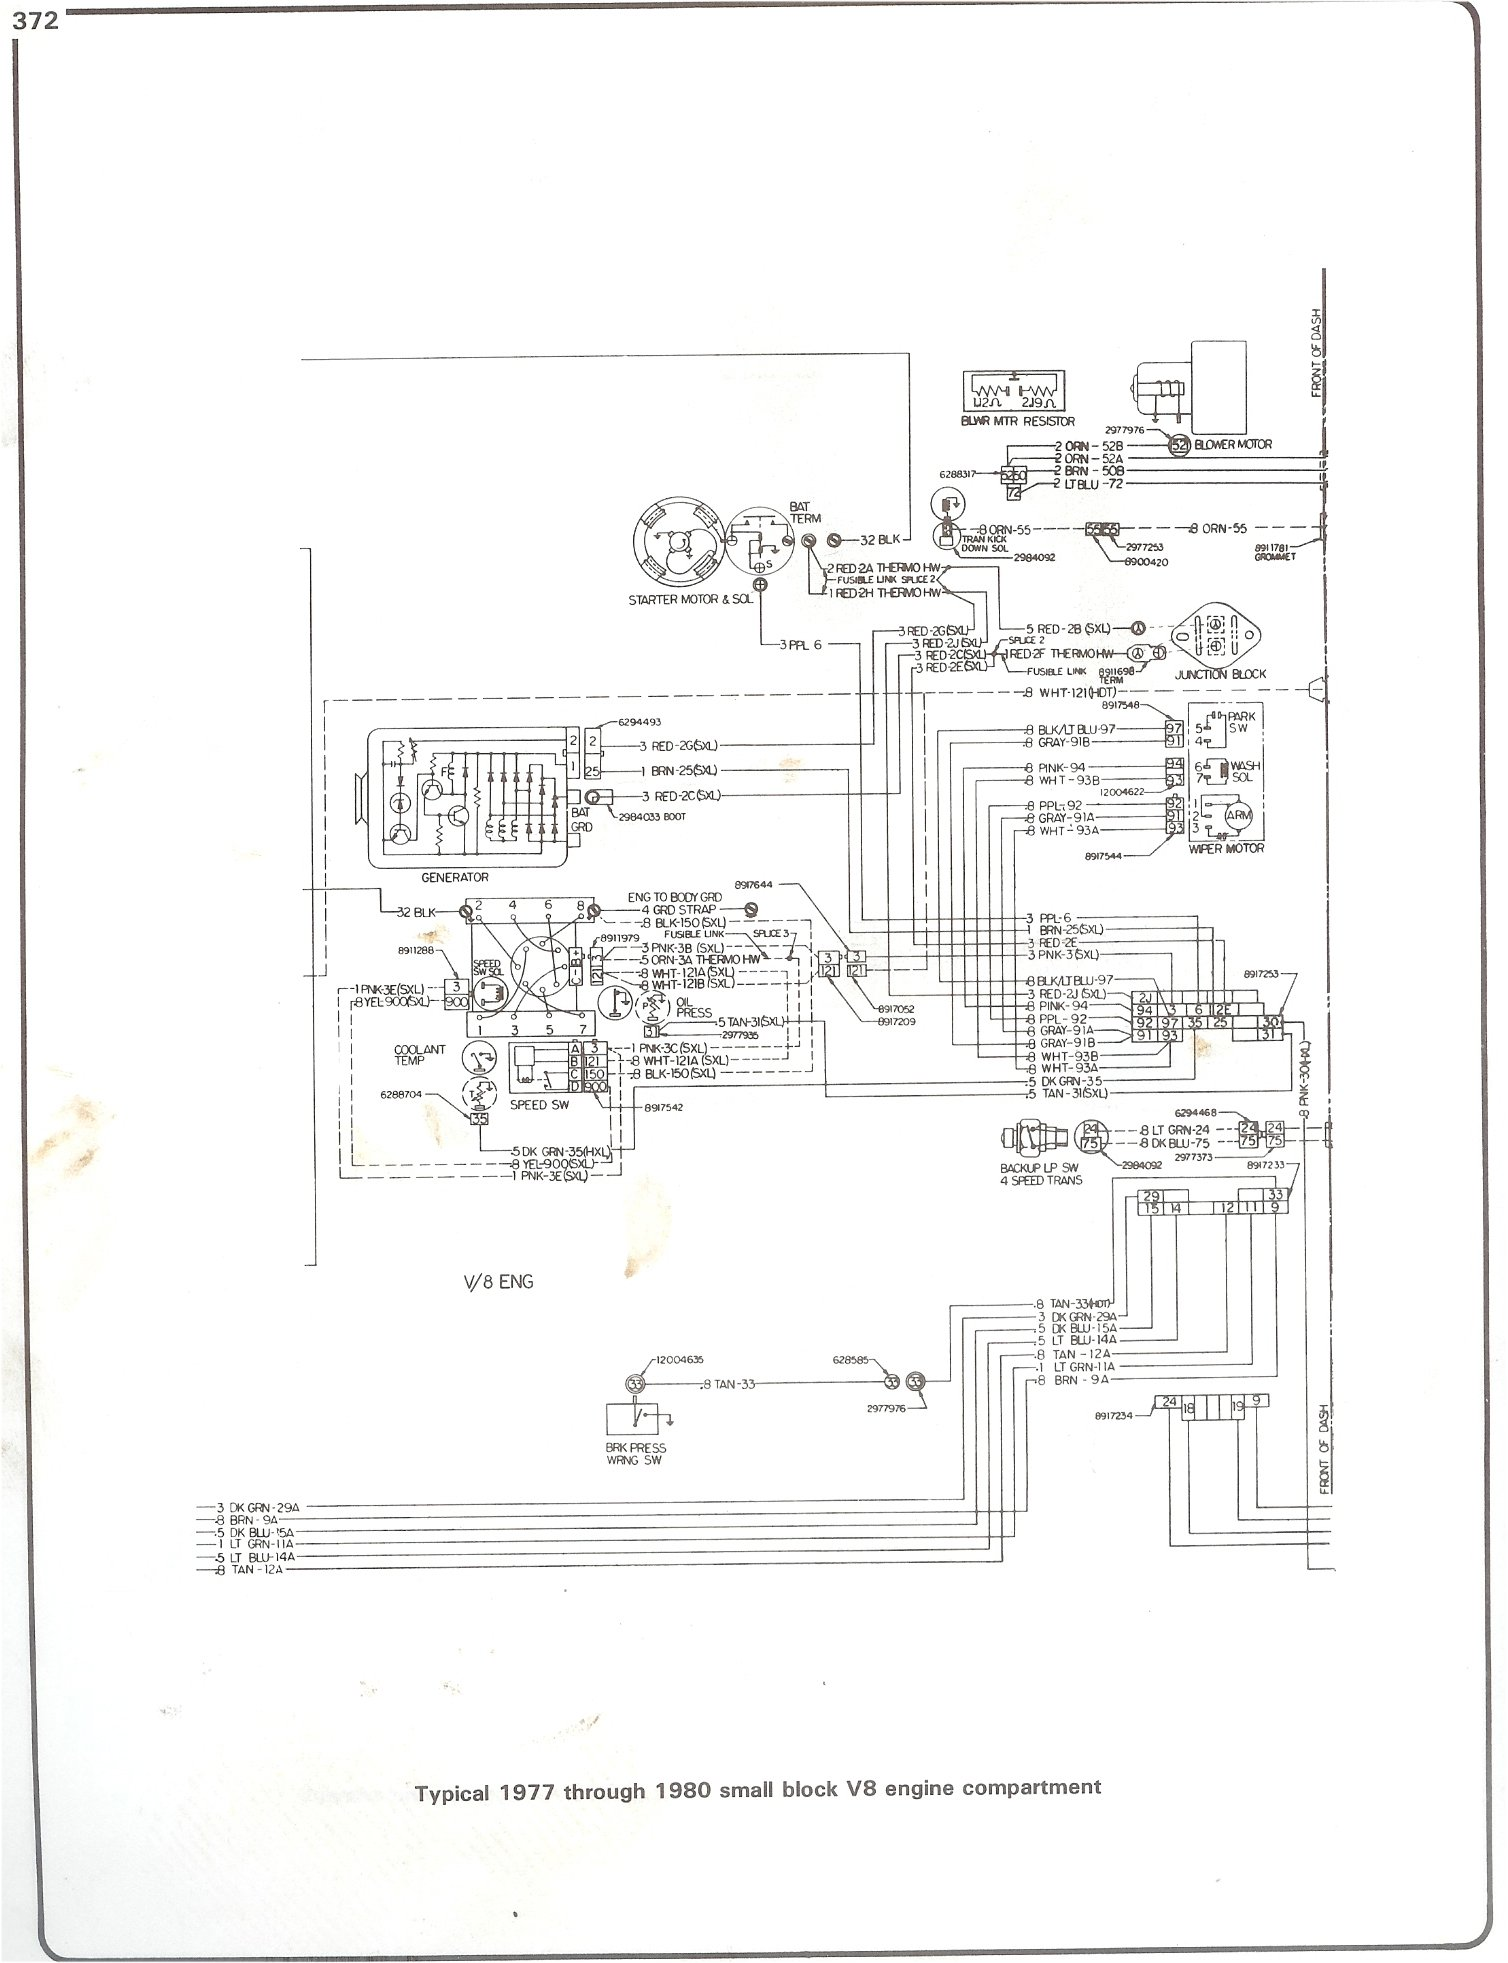 77 cj5 wiring diagram 77 trailer wiring diagram for auto 1973 chevy k10 wiring diagram